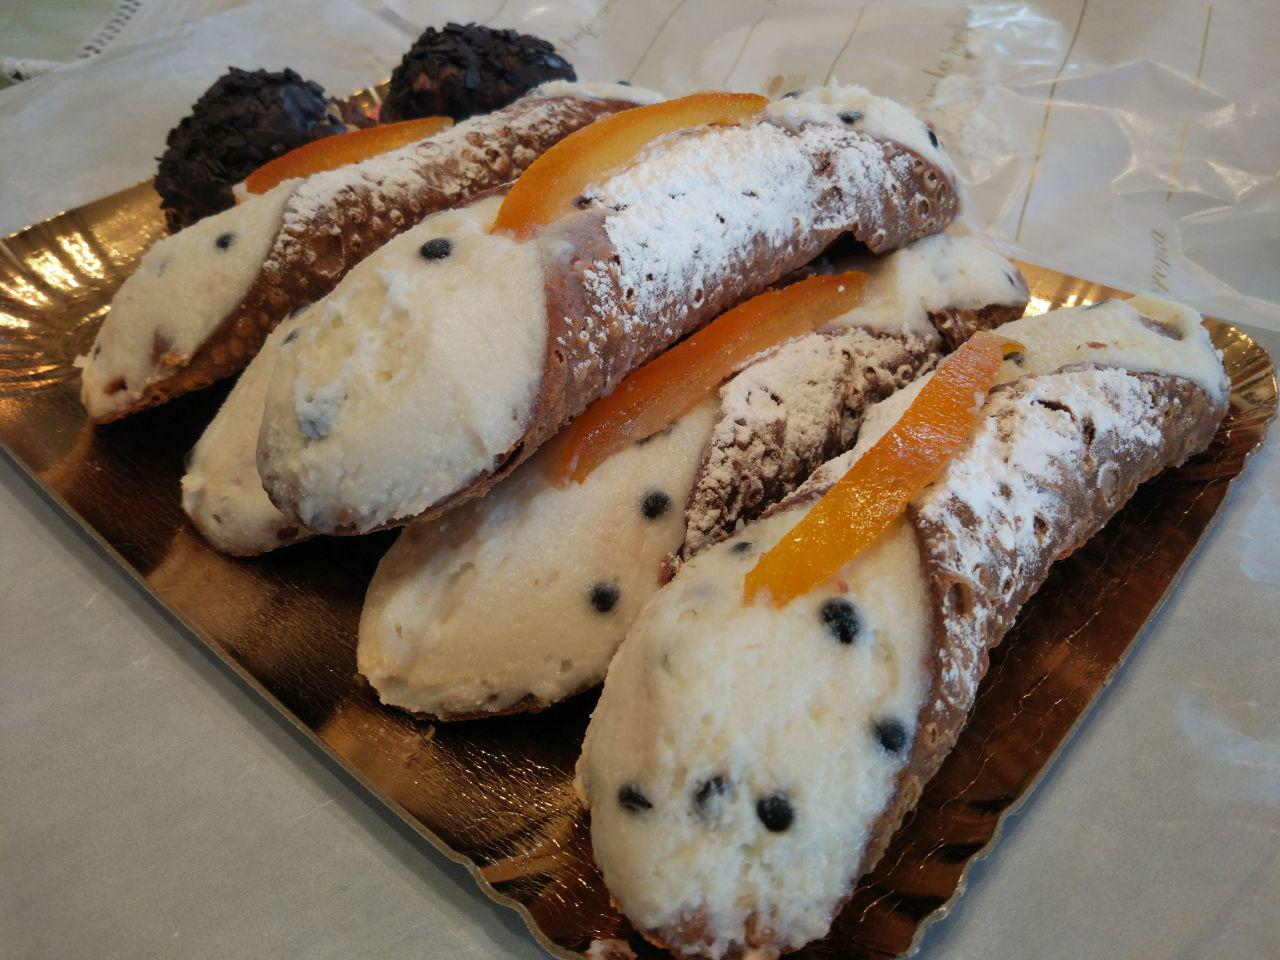 sicily and food and culture - photo#15